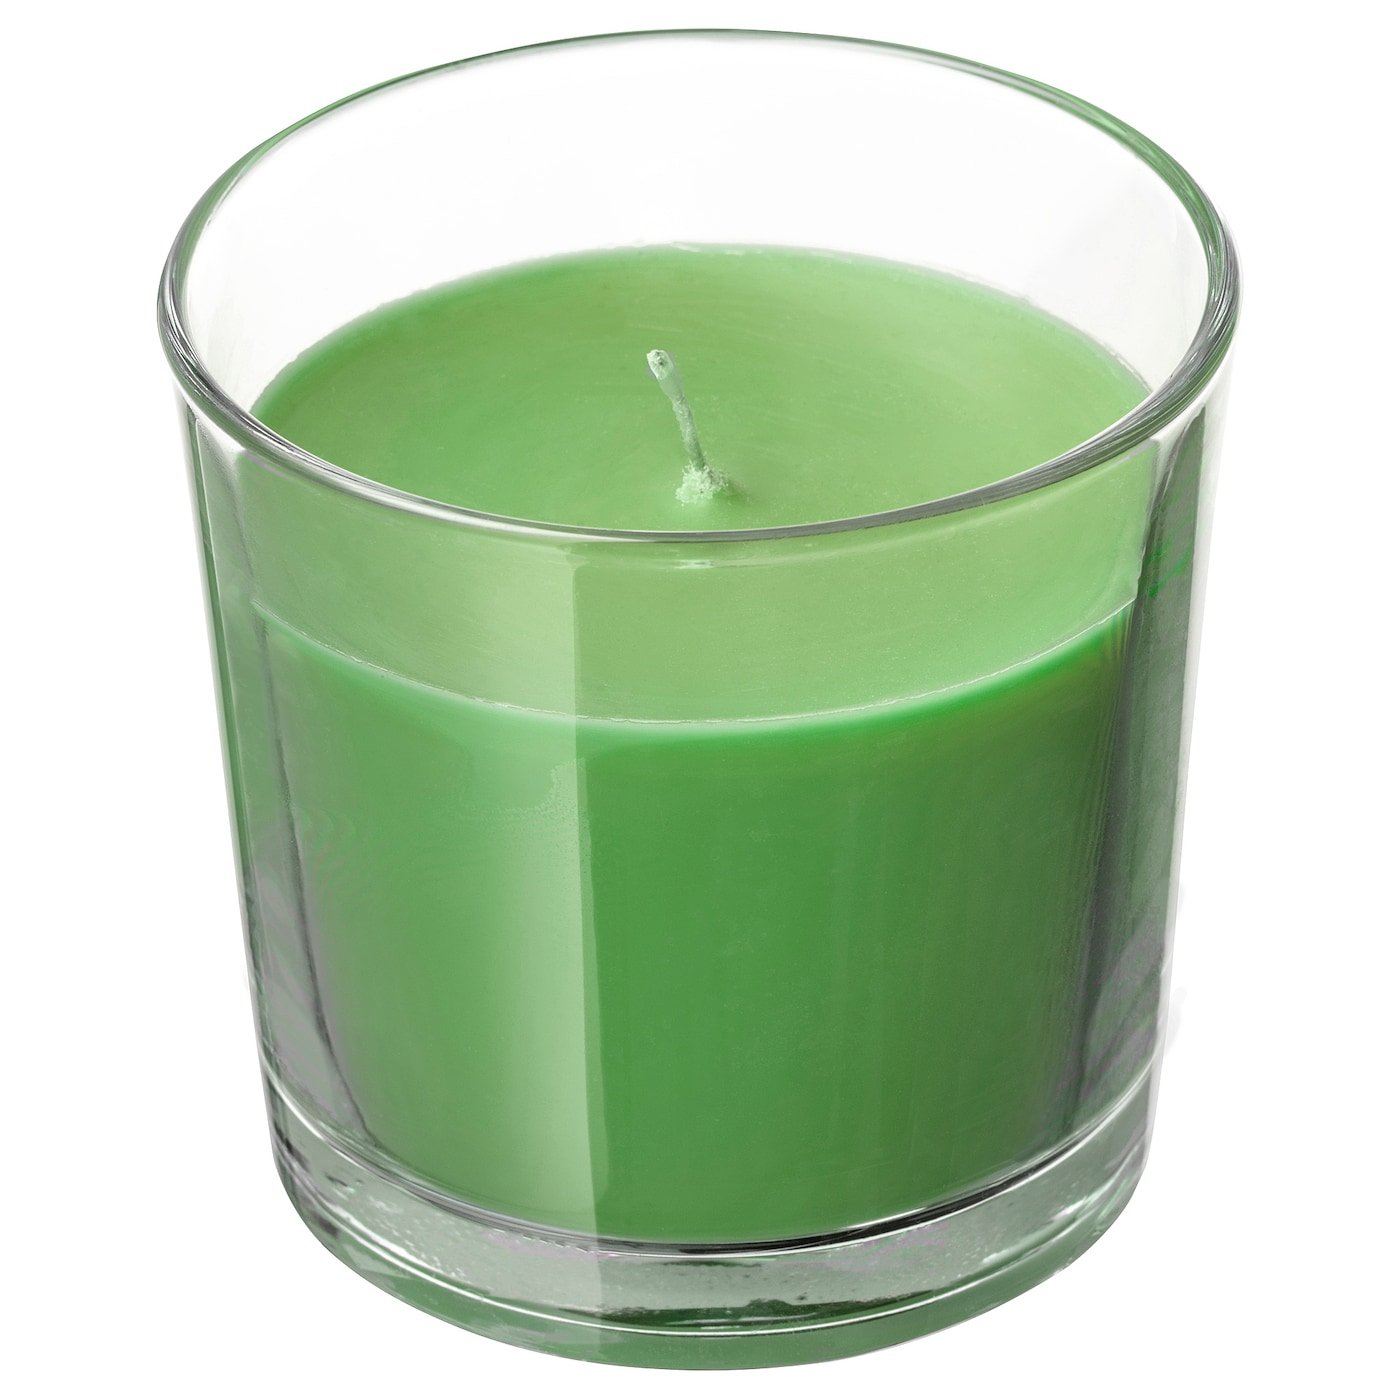 IKEA SINNLIG scented candle in glass Fruity scent of crisp apples and sweet pears.